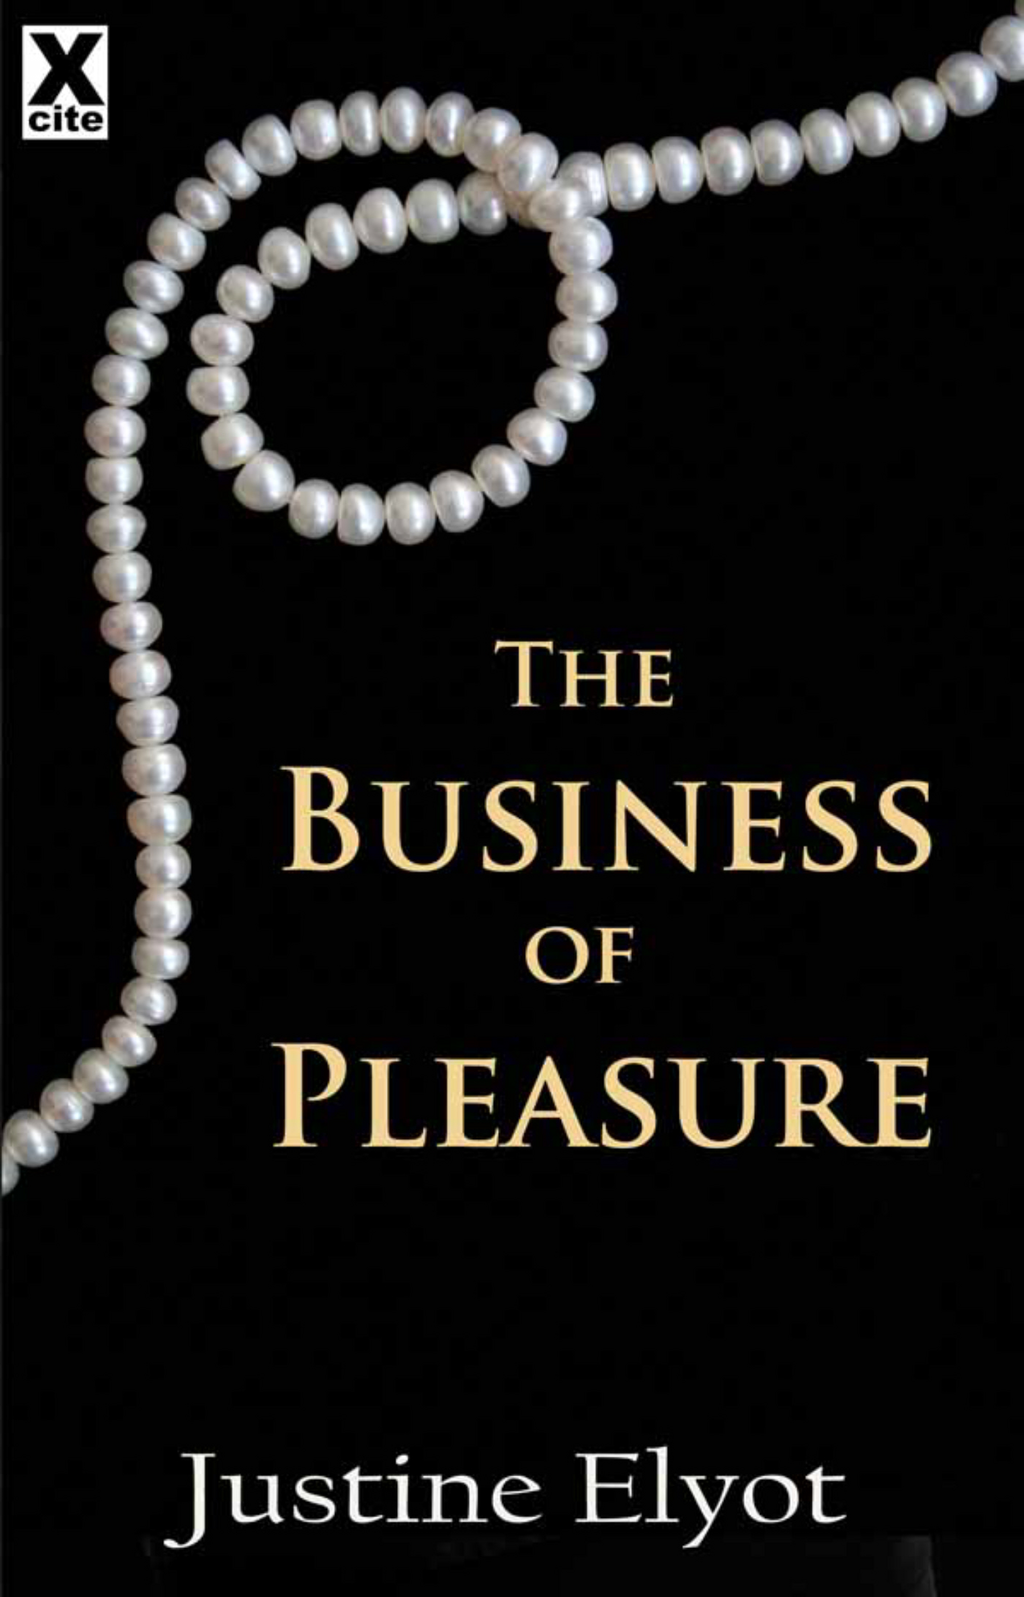 The Business of Pleasure